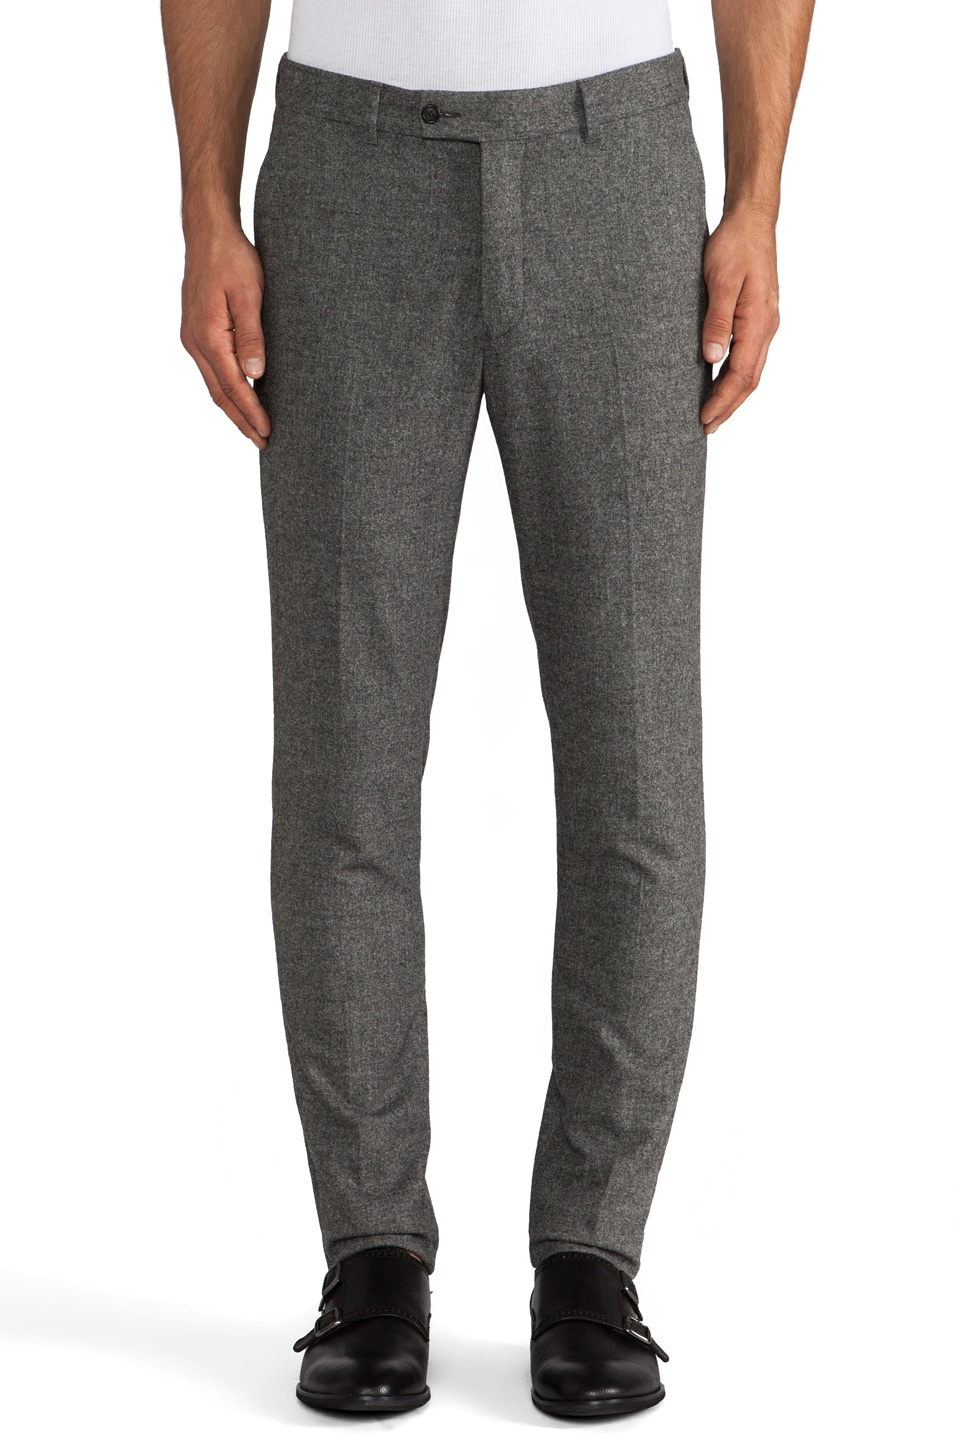 Hentsch Man Taper Trouser in Dark Grey Flannel